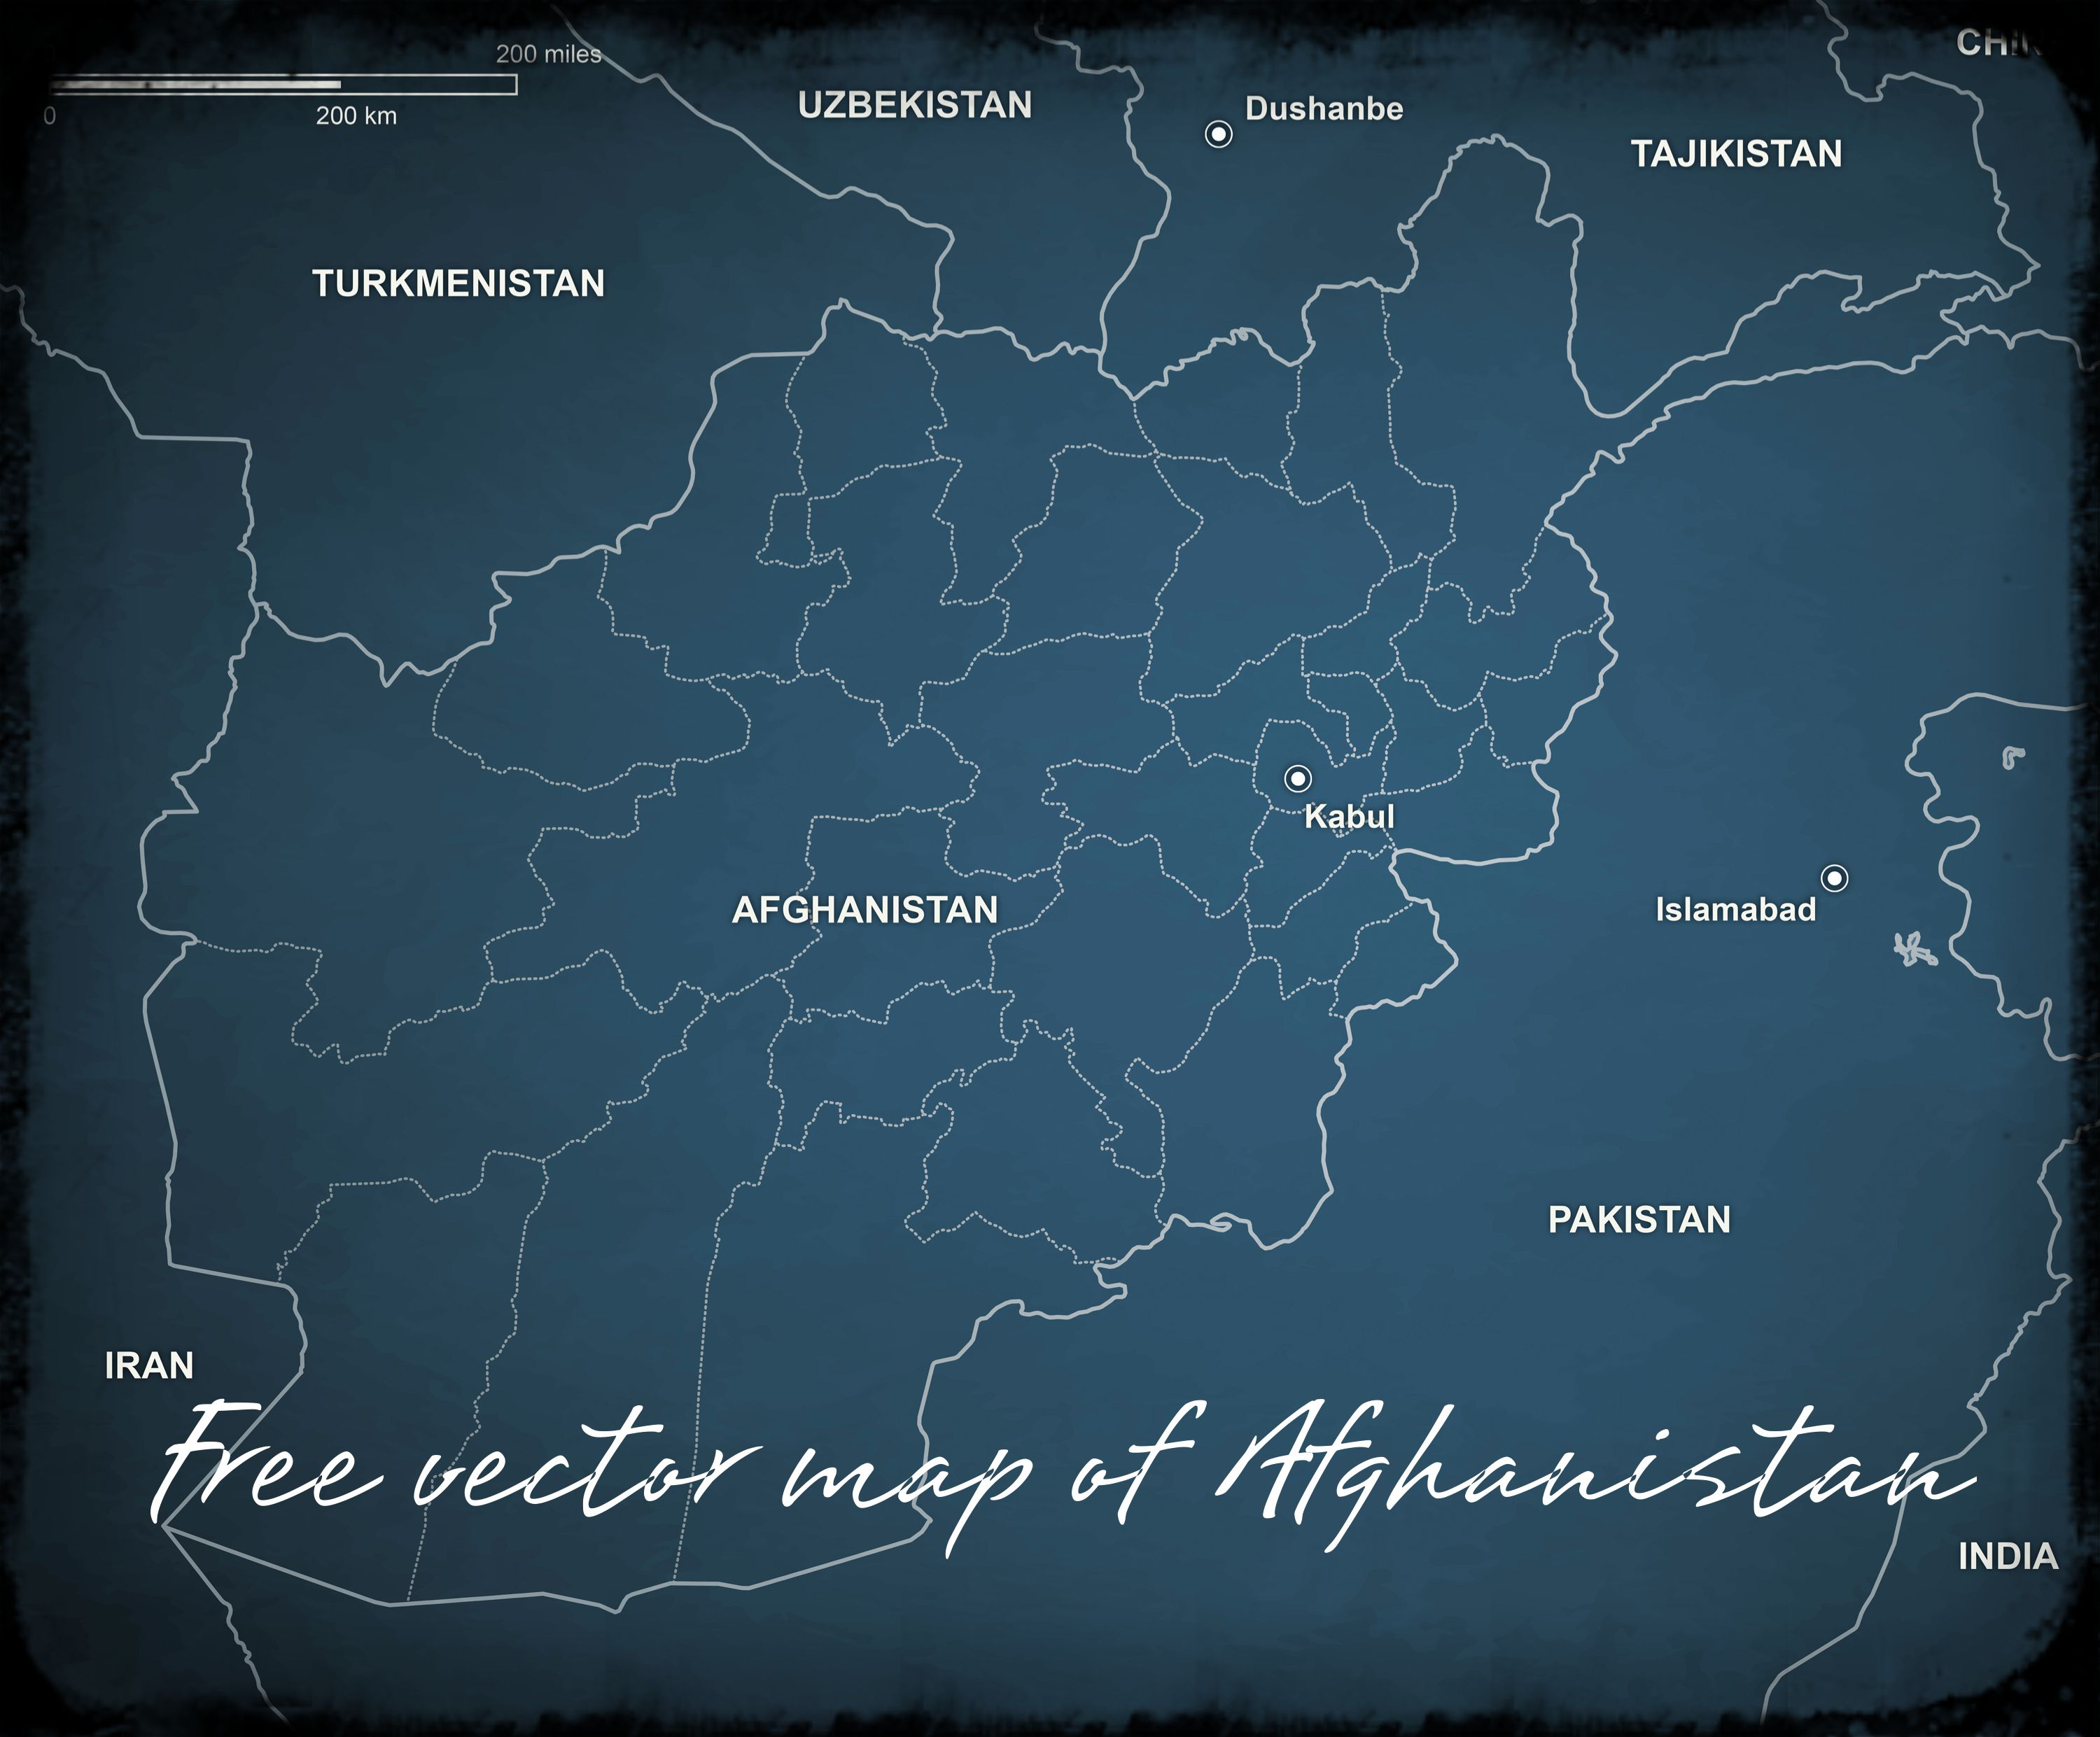 Download a completely free vector map of Afghanistan AI EPS PDF